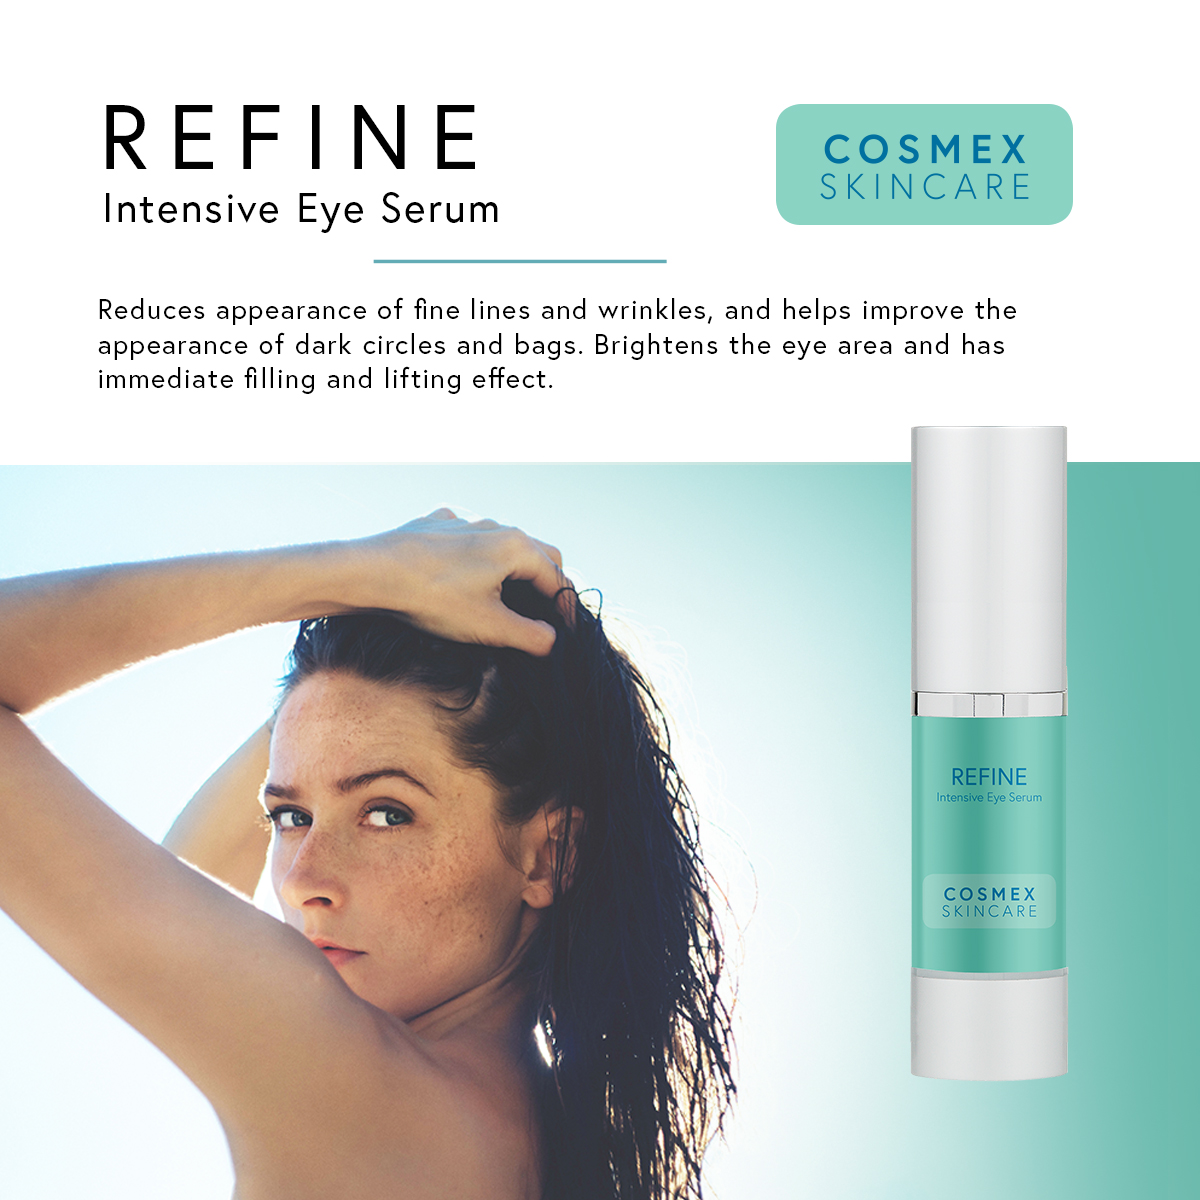 Refine - Intensive Eye Serum